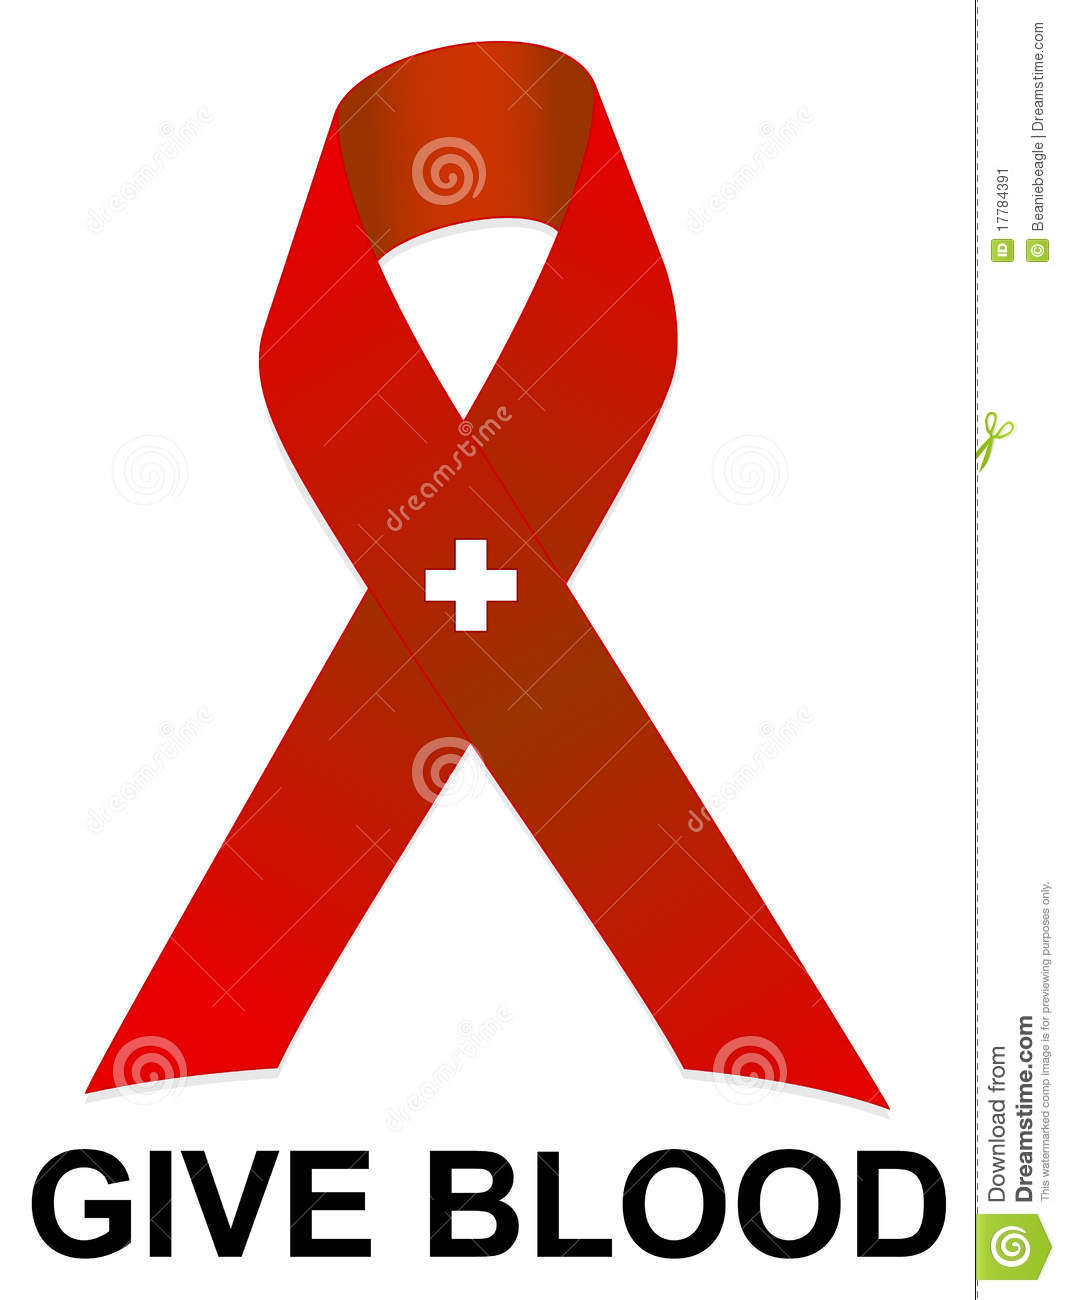 giving blood clipart - photo #30